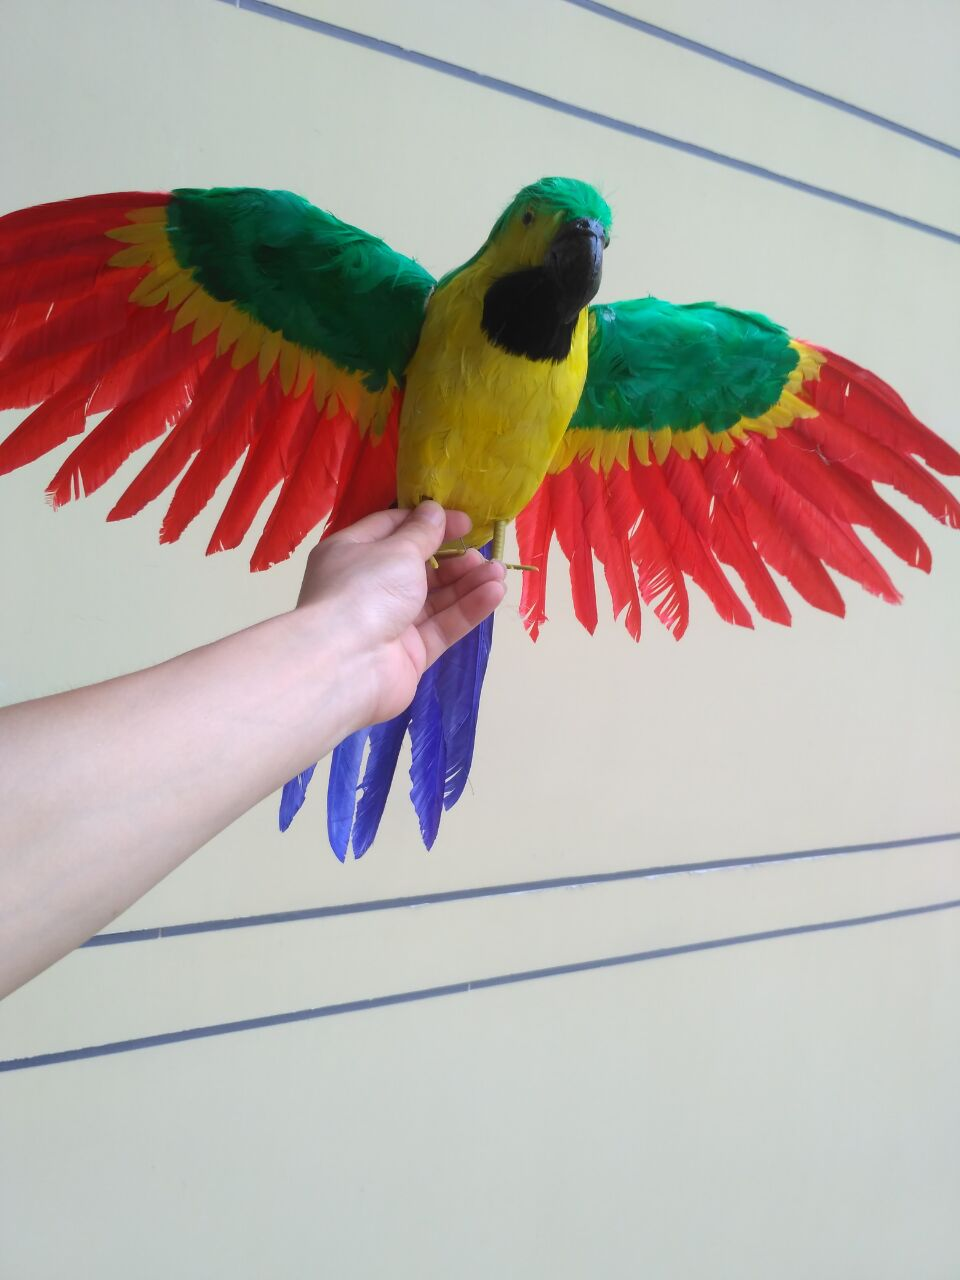 new simulation green&yellow parrot toy plastic&furs wings bird doll gift about 60x40cm 1354 цена и фото